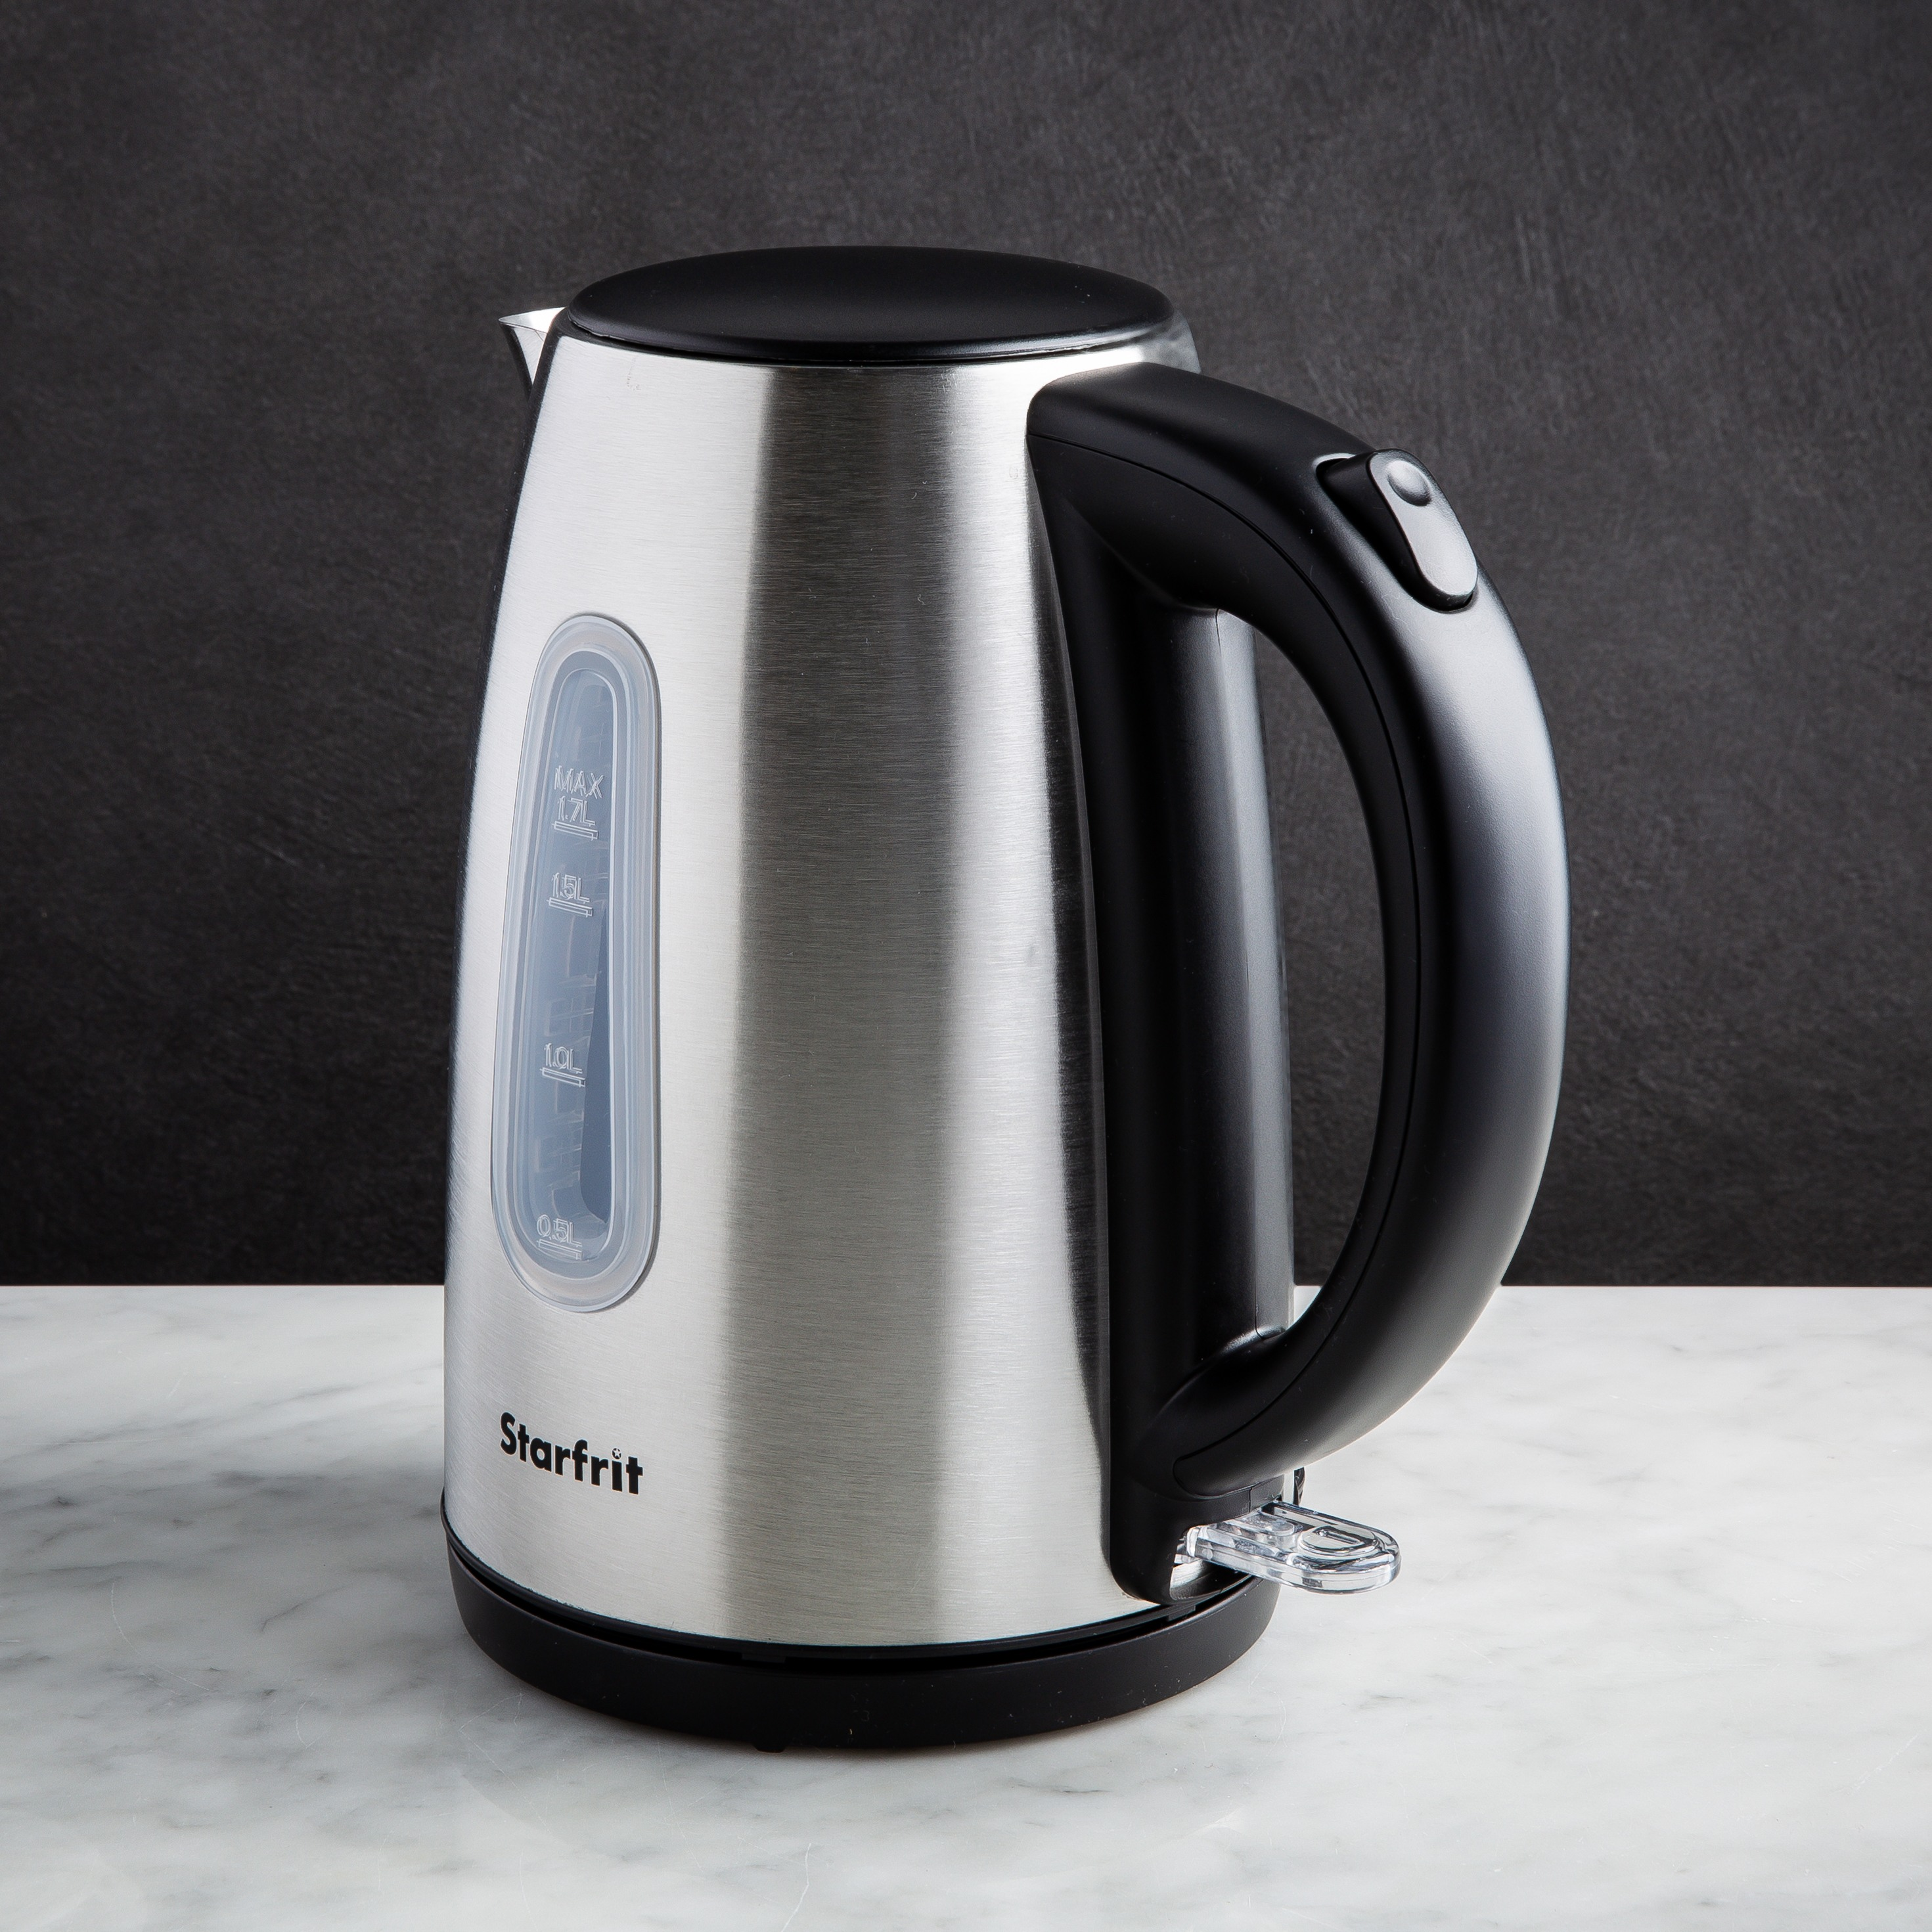 stainless steel kettle with black accents